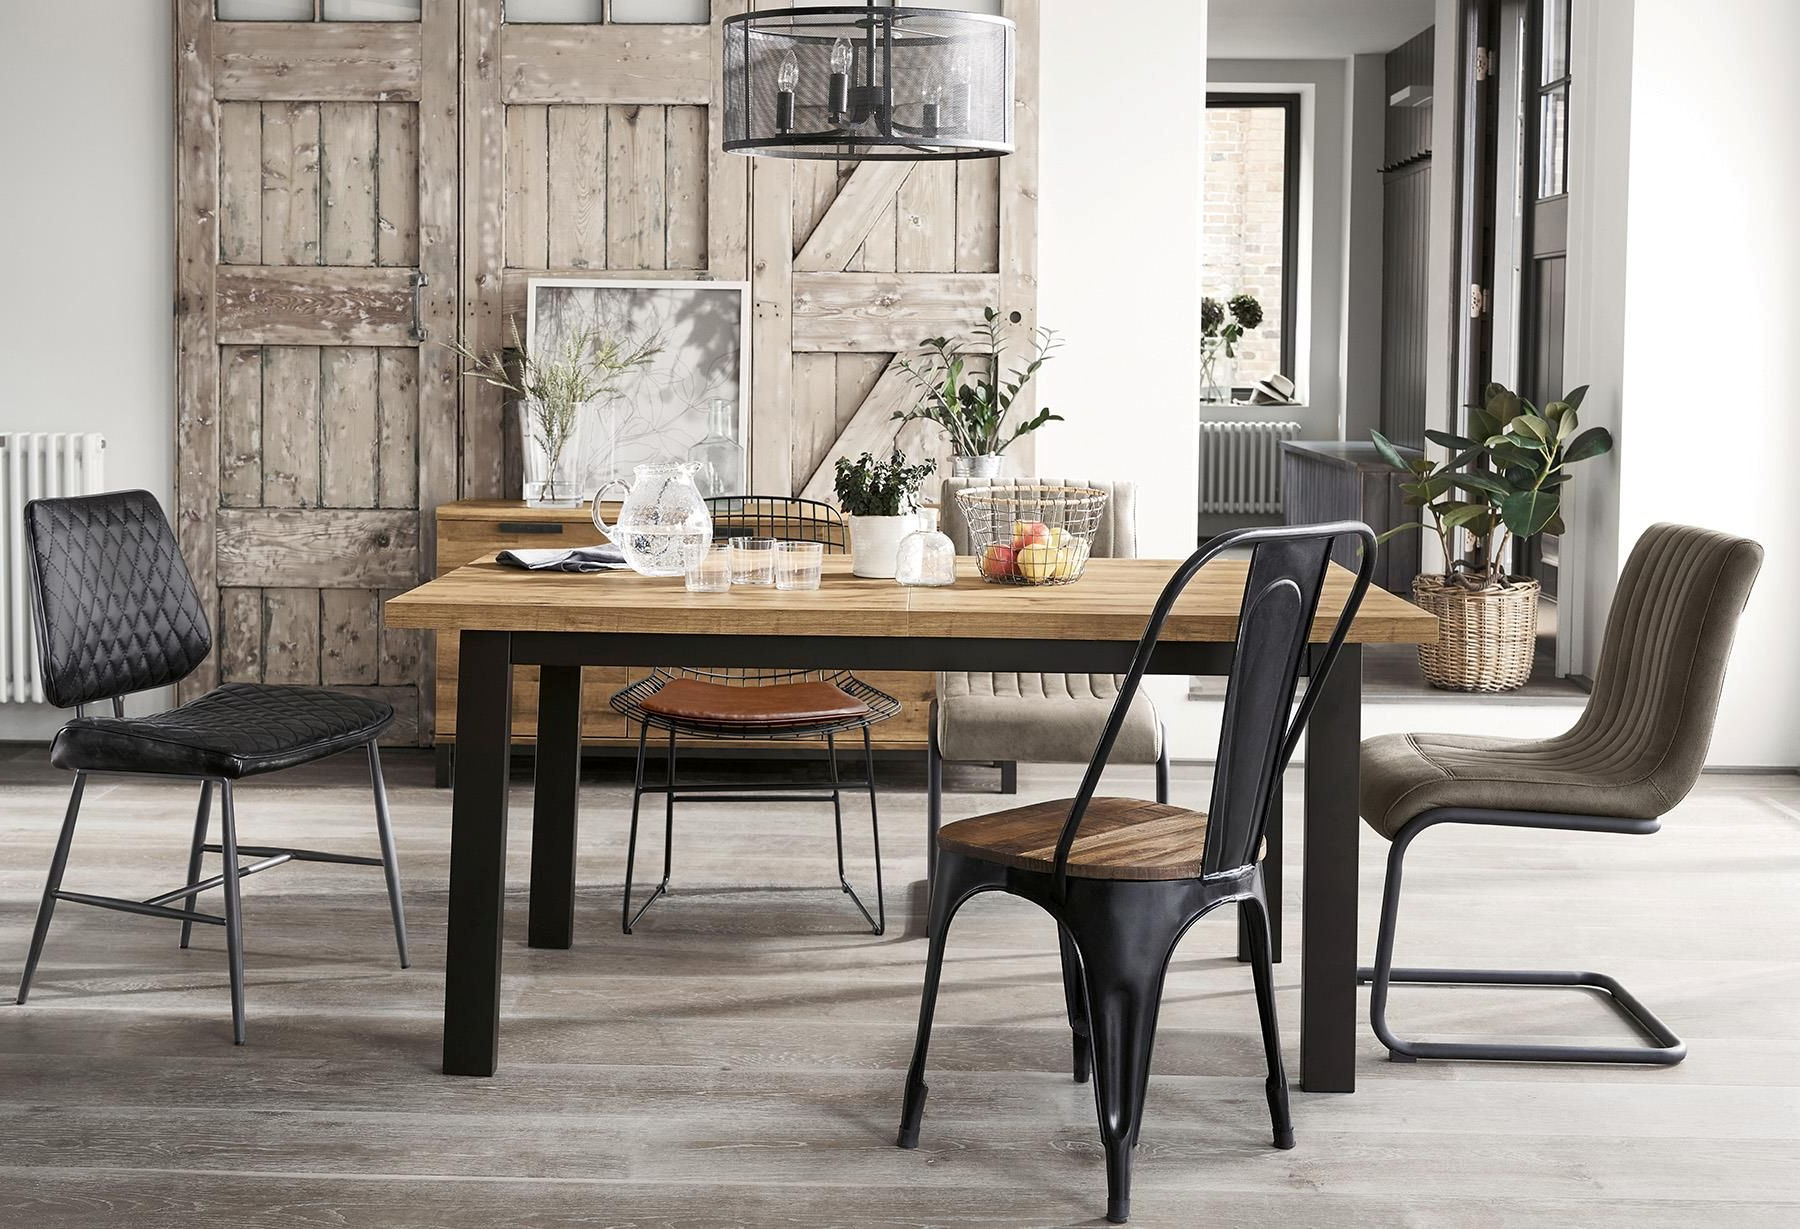 Widely Used 8 Seater Wood Contemporary Dining Tables With Extension Leaf Within Buy Bronx 6 8 Seater Extending Dining Table From The Next Uk (View 2 of 25)